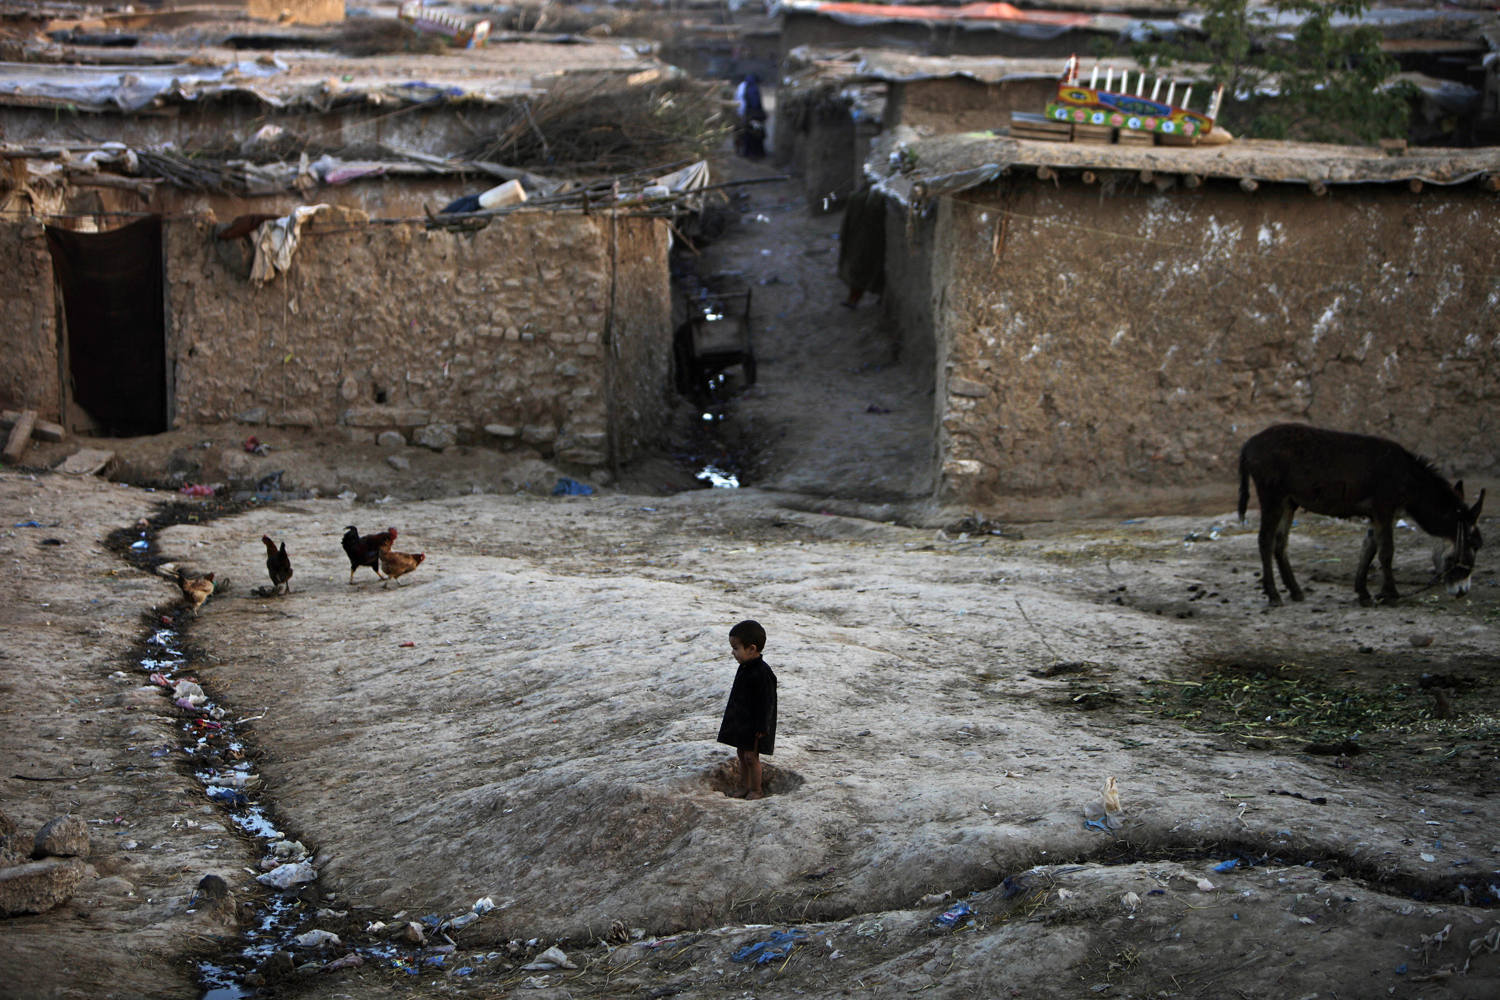 March 21, 2013. An Afghan refugee boy watches chickens feeding in a neighborhood on the outskirts of Islamabad.